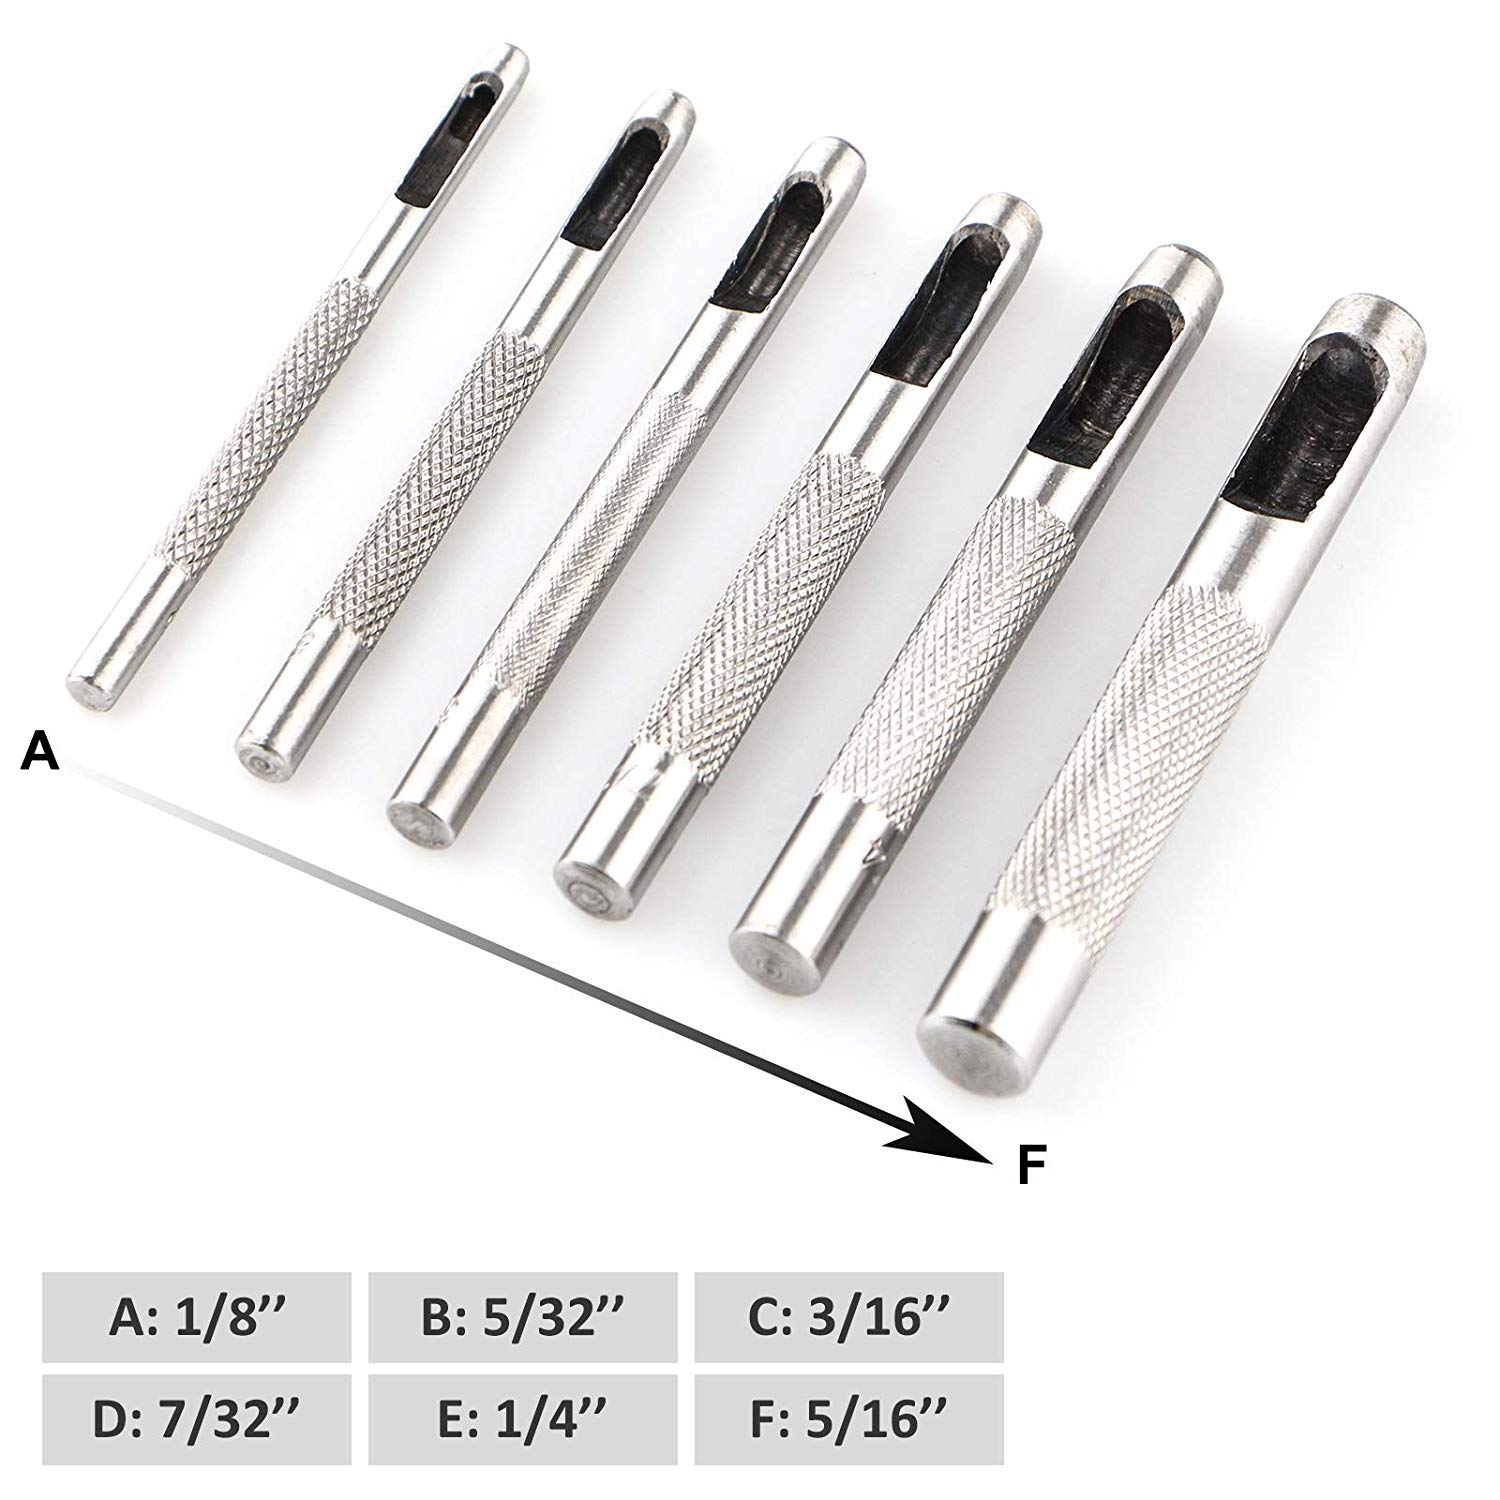 9 Pieces Hollow Leather Punch Set Heavy Duty Round Leather Hole Punch